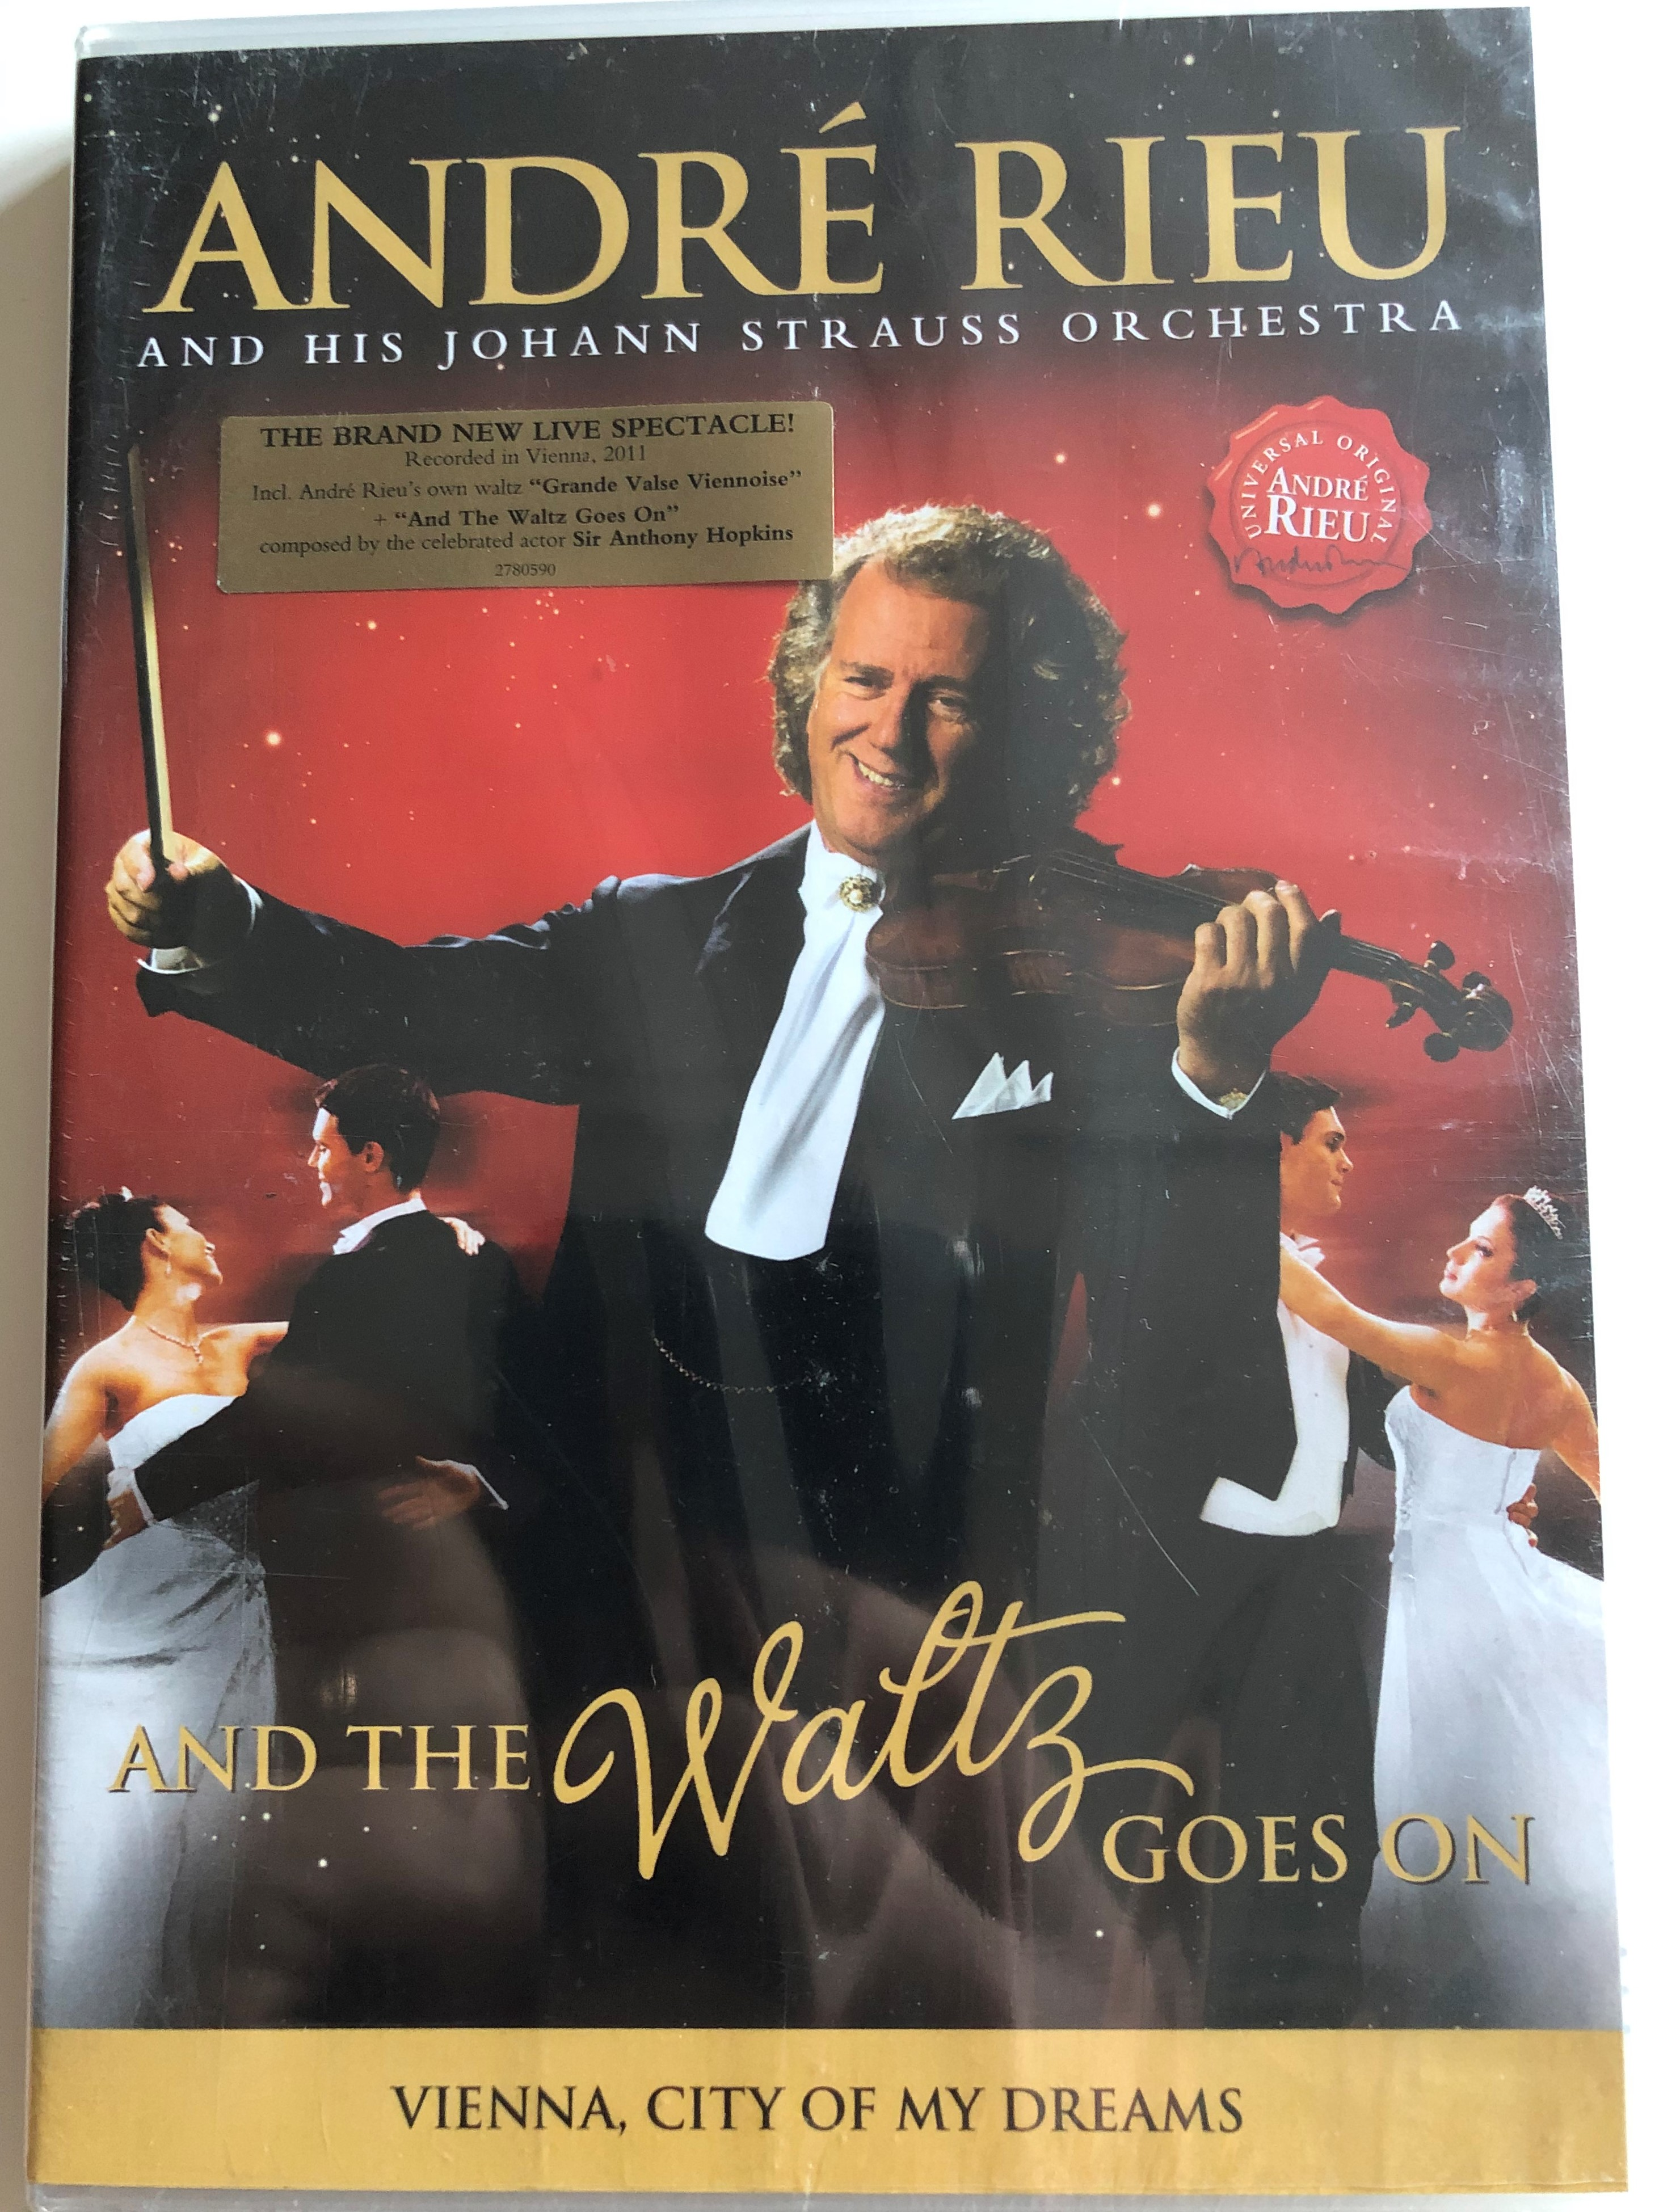 and-the-waltz-goes-on-dvd-2011-andr-rieu-and-his-johann-strauss-orchestra-1.jpg